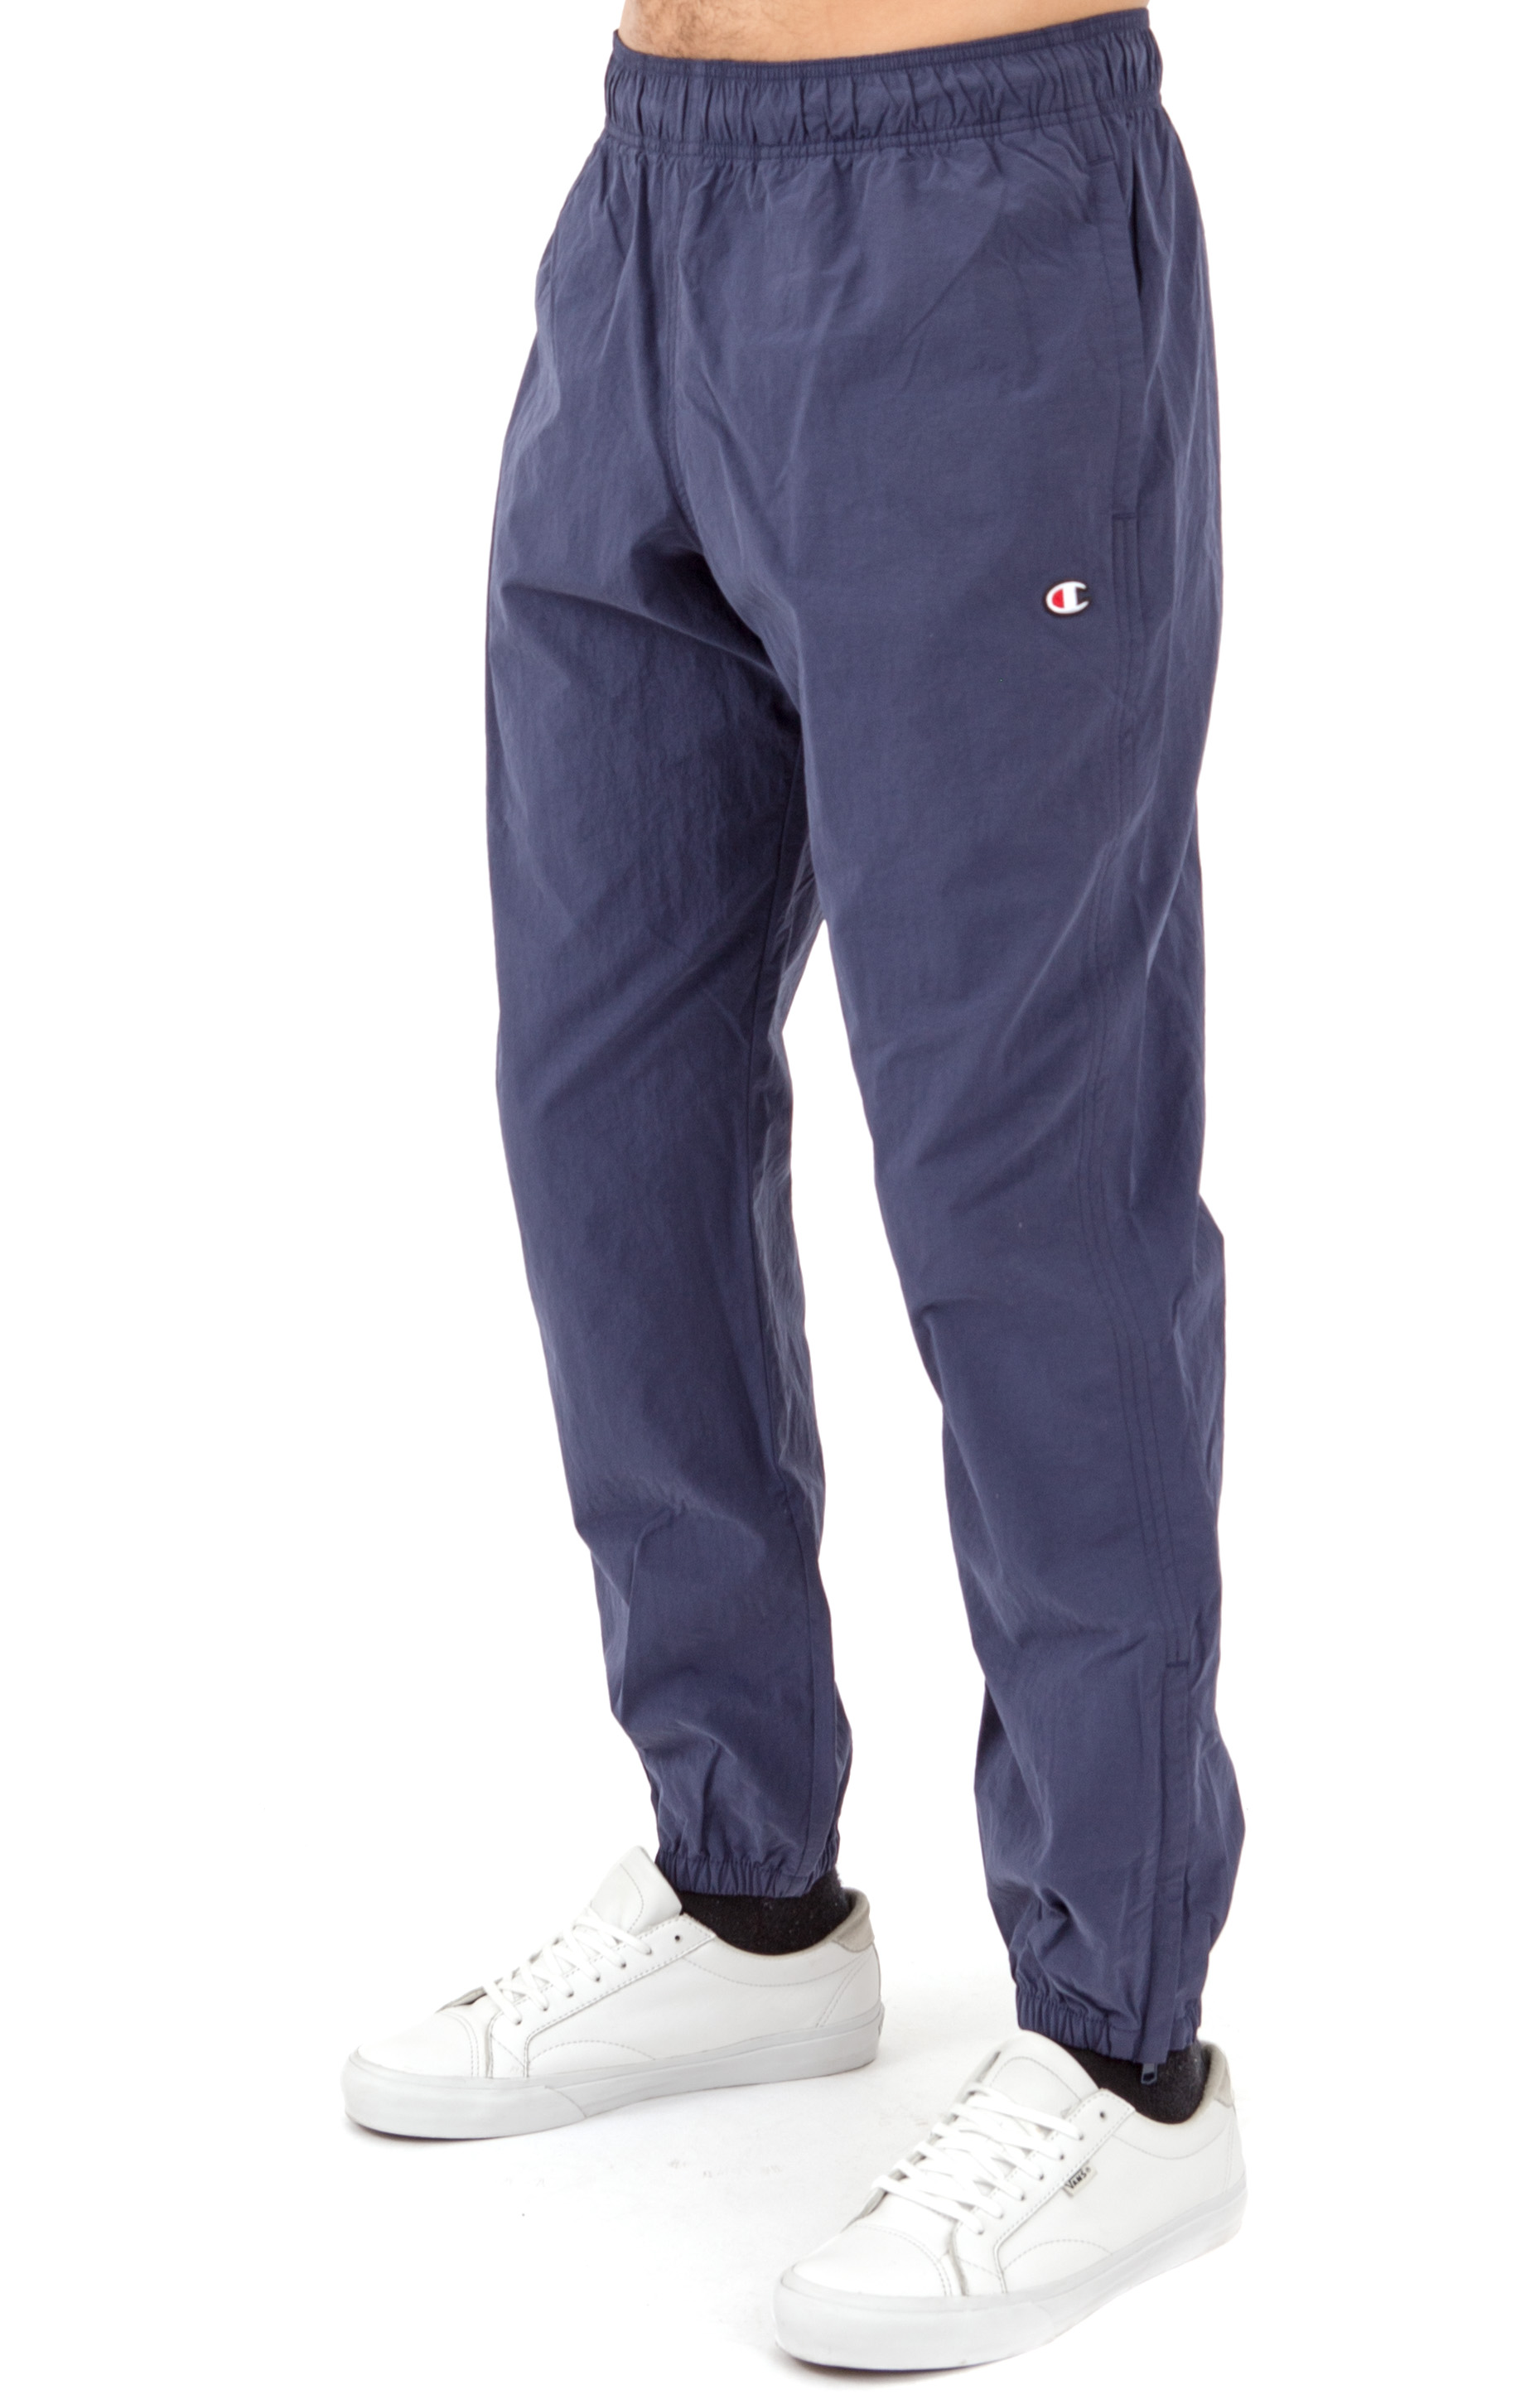 3ed42d7f Champion Woven Pant - Imperial Indigo